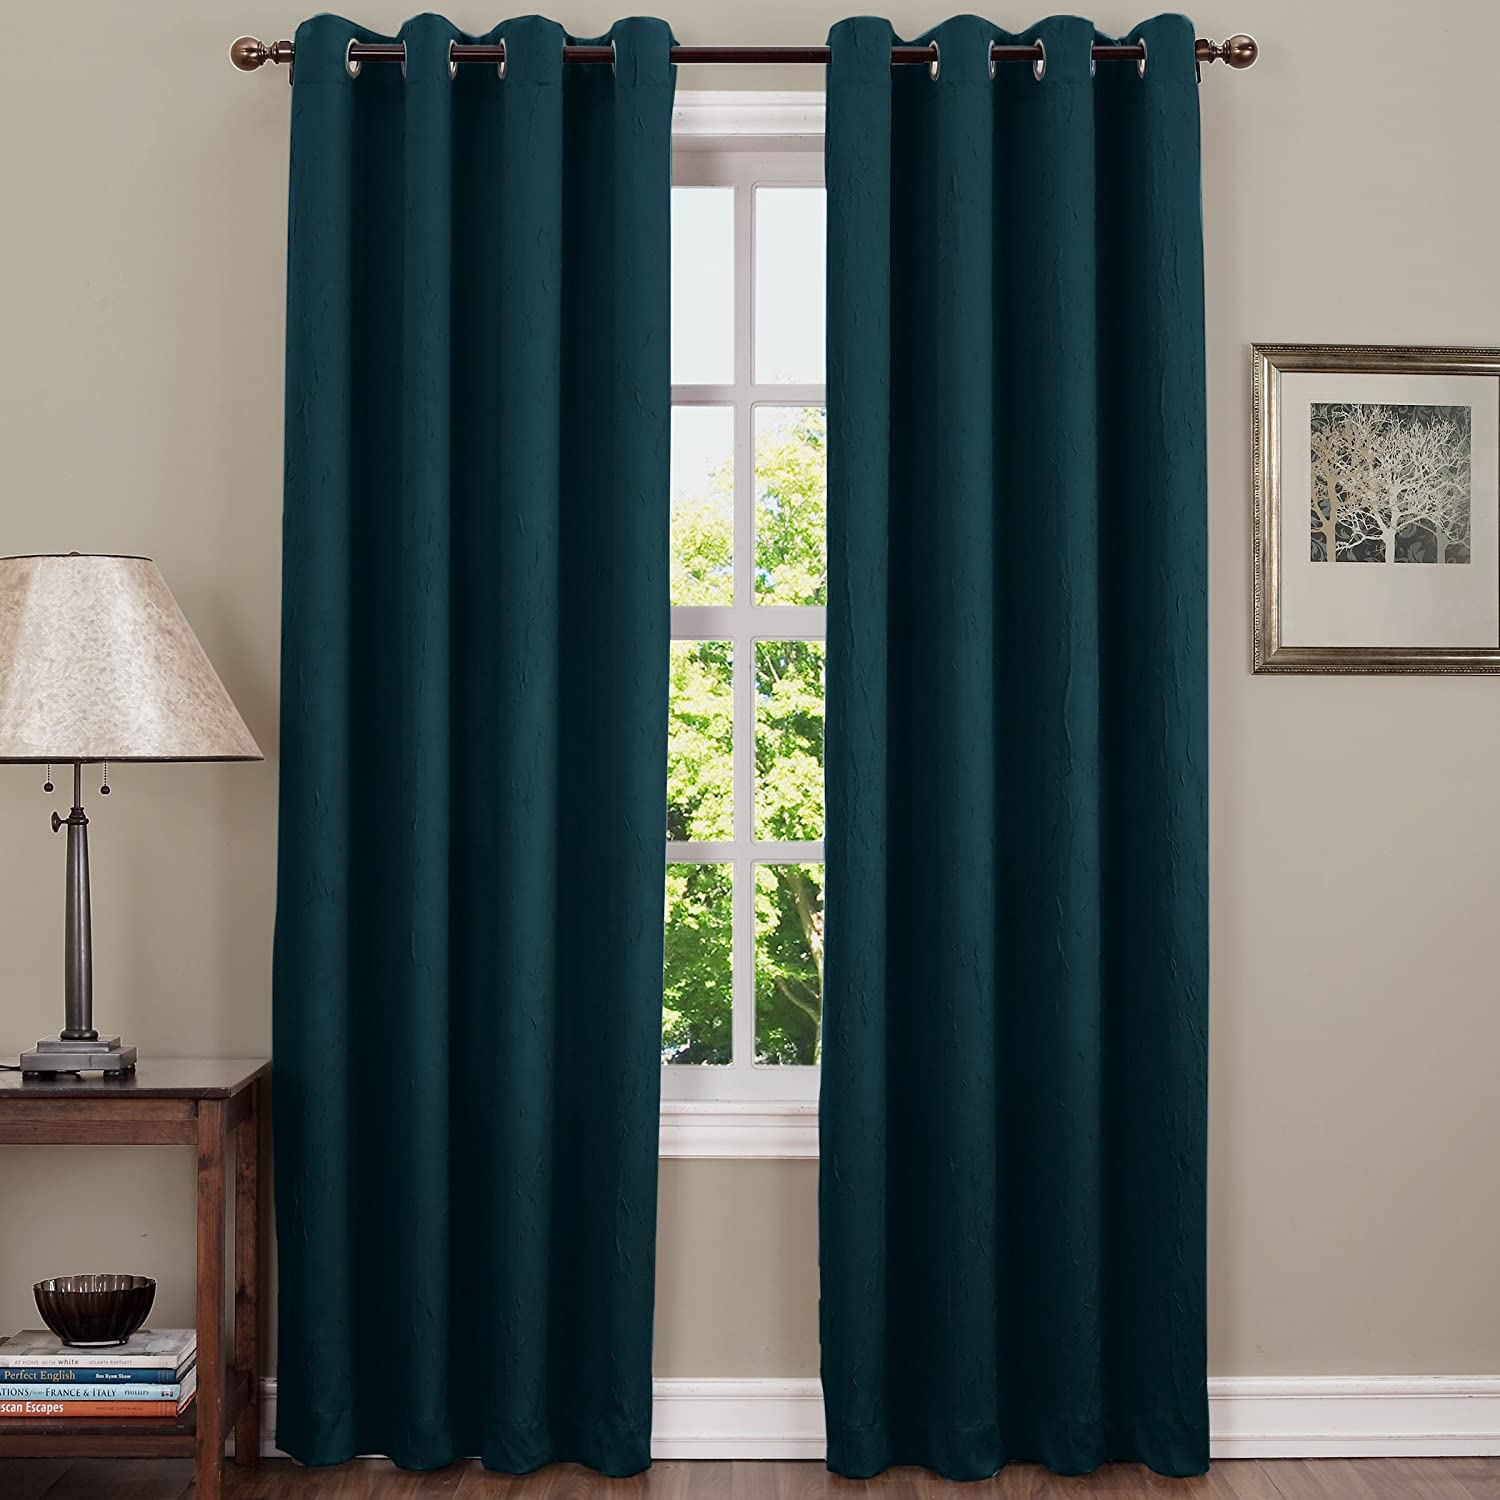 teal fabric itm curtains matching swag with pleat pelmet blackout drapes sheer blue curtain valance eyelets